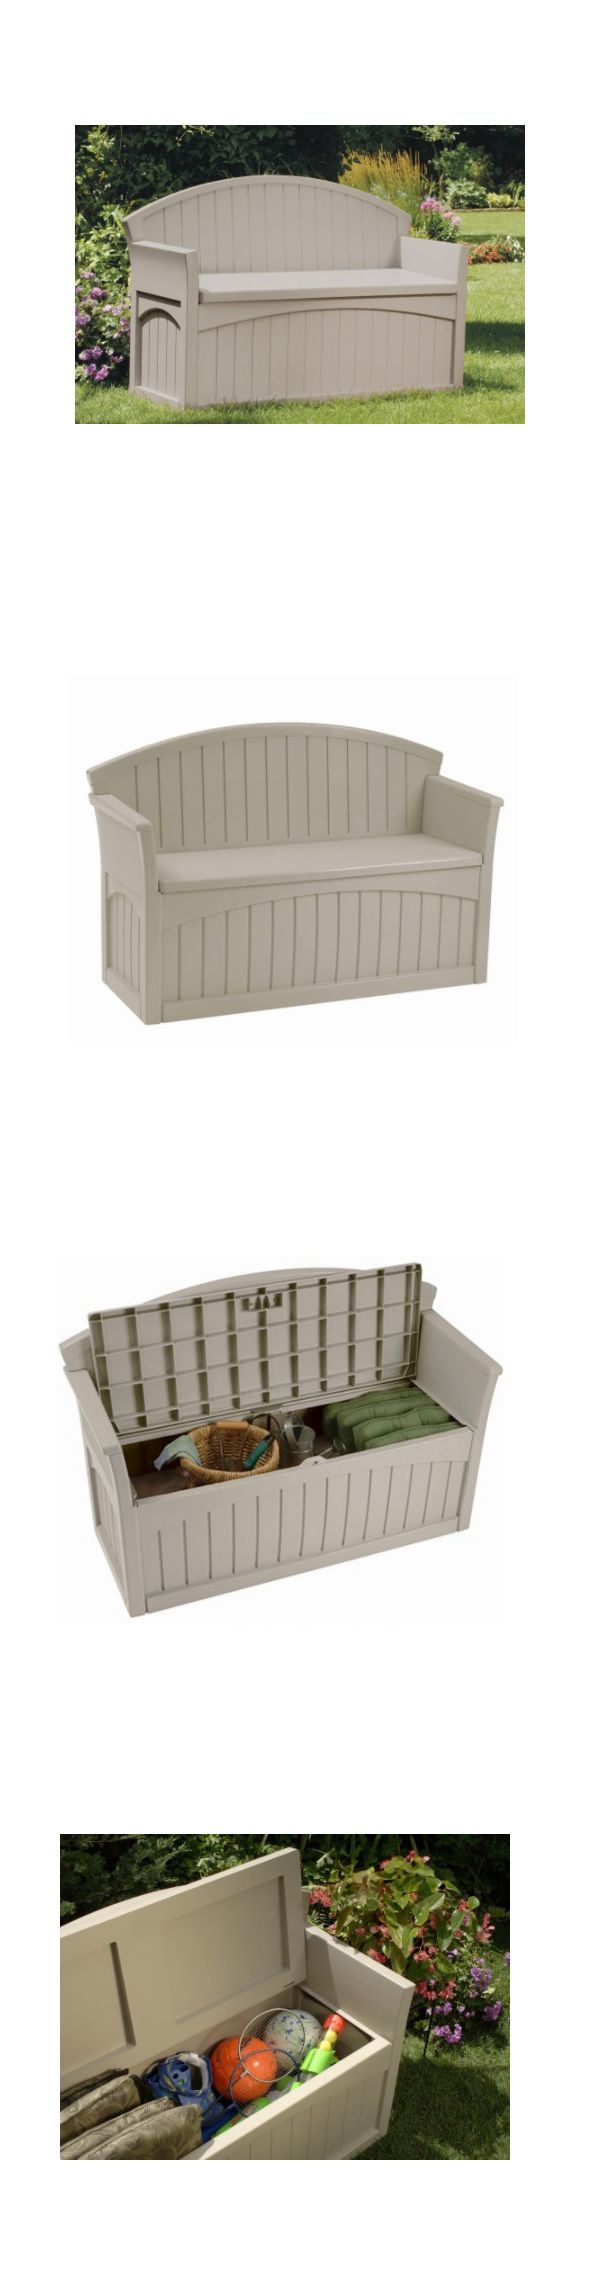 Other Patio and Garden Furniture 10035: Storage Deck Box Outdoor Container Bin Chest Patio Suncast 50 Gallon Bench Seat -> BUY IT NOW ONLY: $92.11 on eBay!